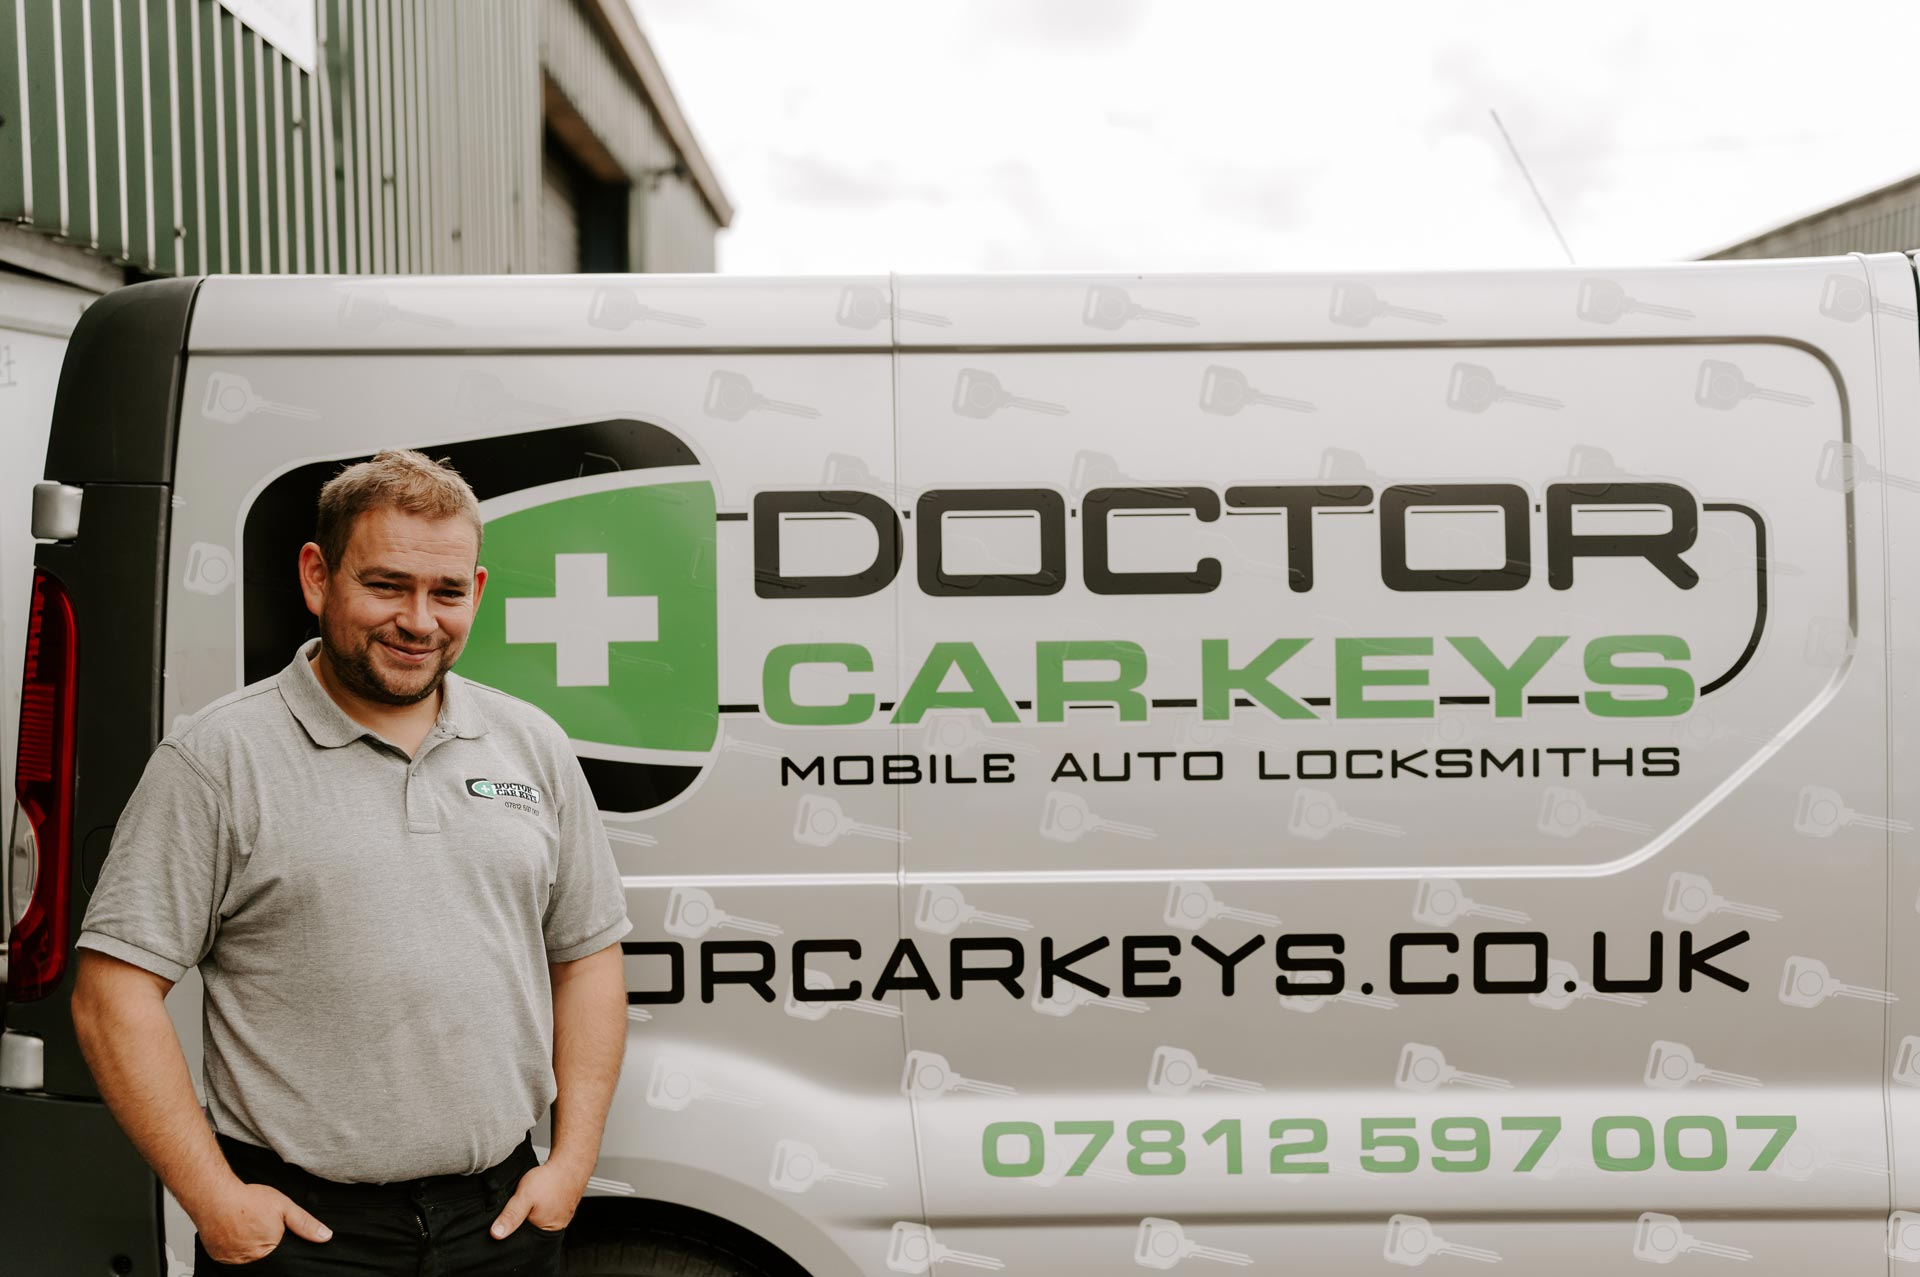 Auto Locksmiths in Ascot